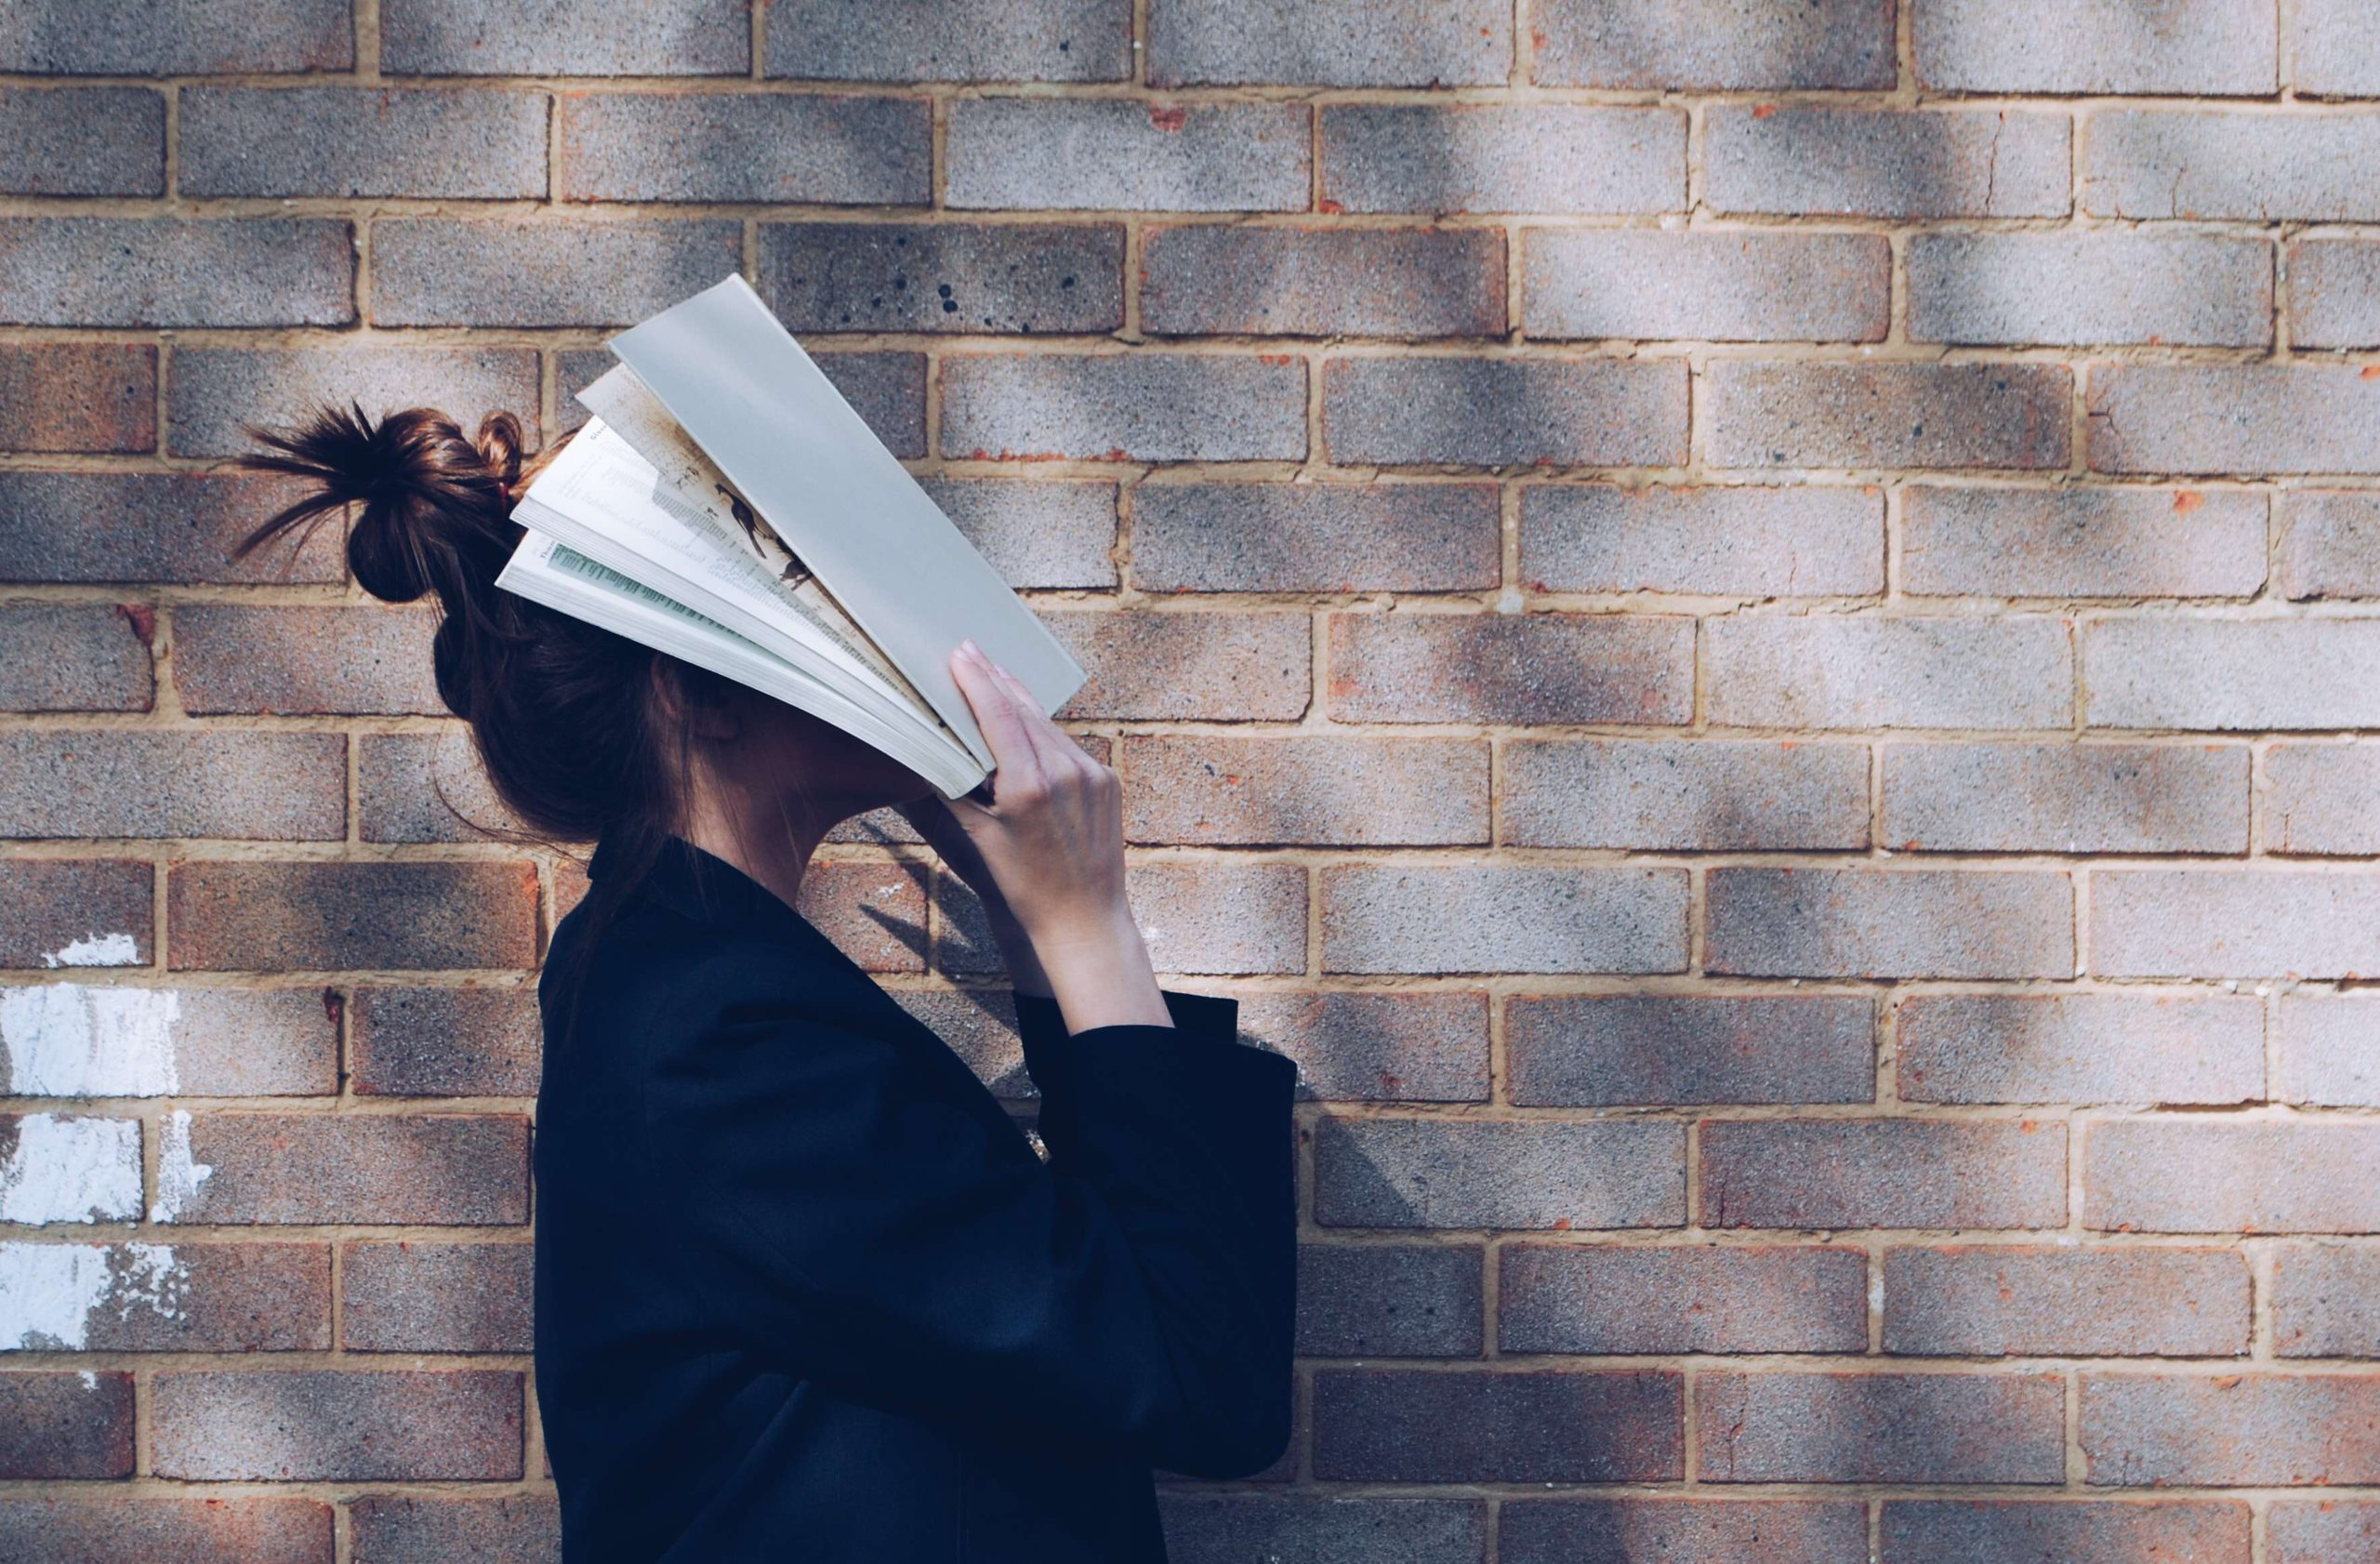 Woman standing next to a brick wall with her head immersed in a book